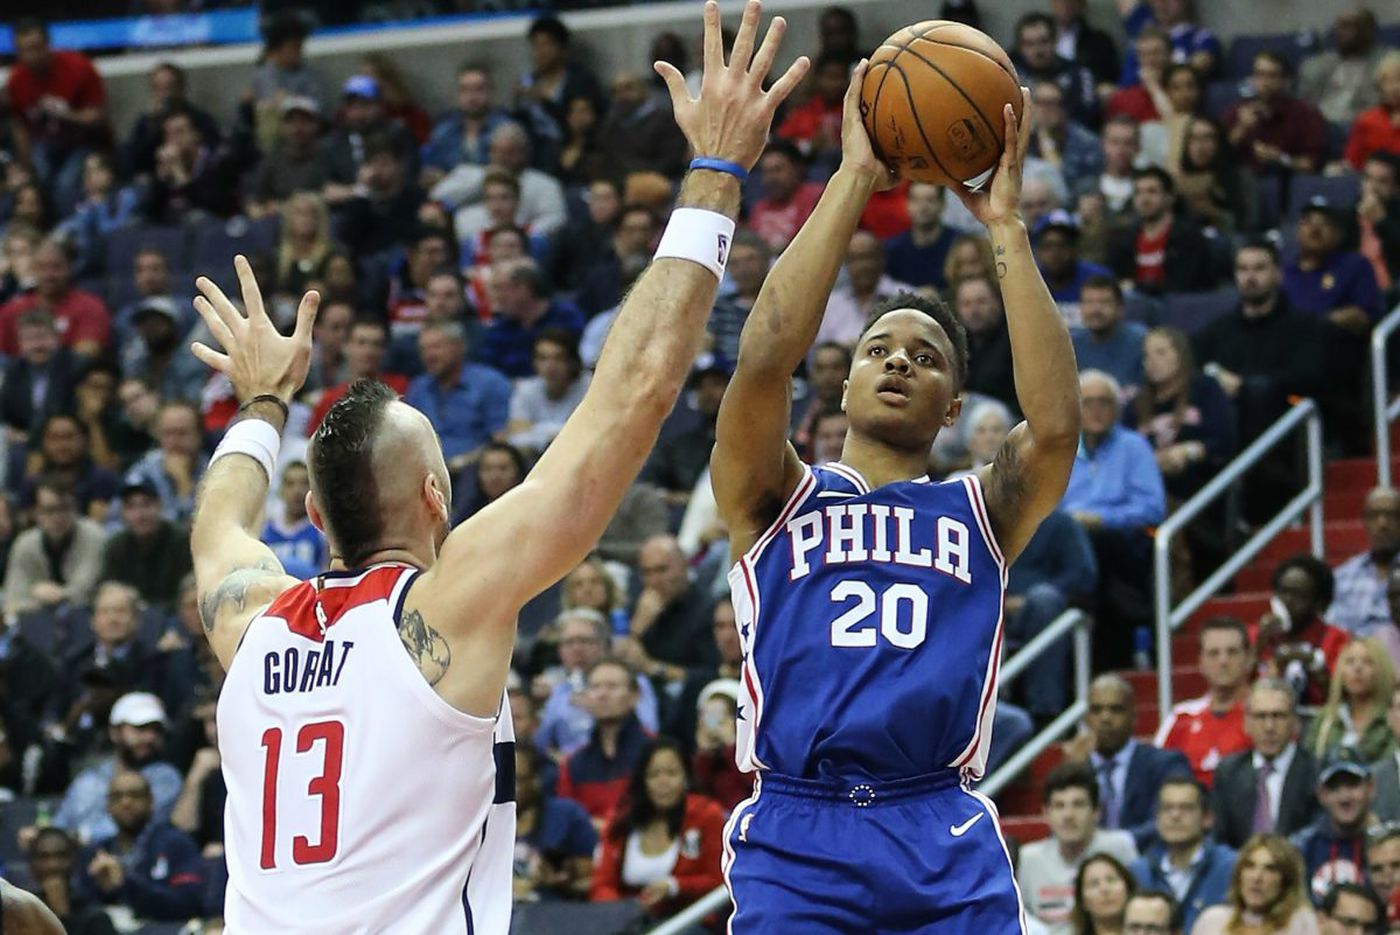 Markelle Fultz's shoulder is clearly affecting his shot, but will the Sixers sit him?